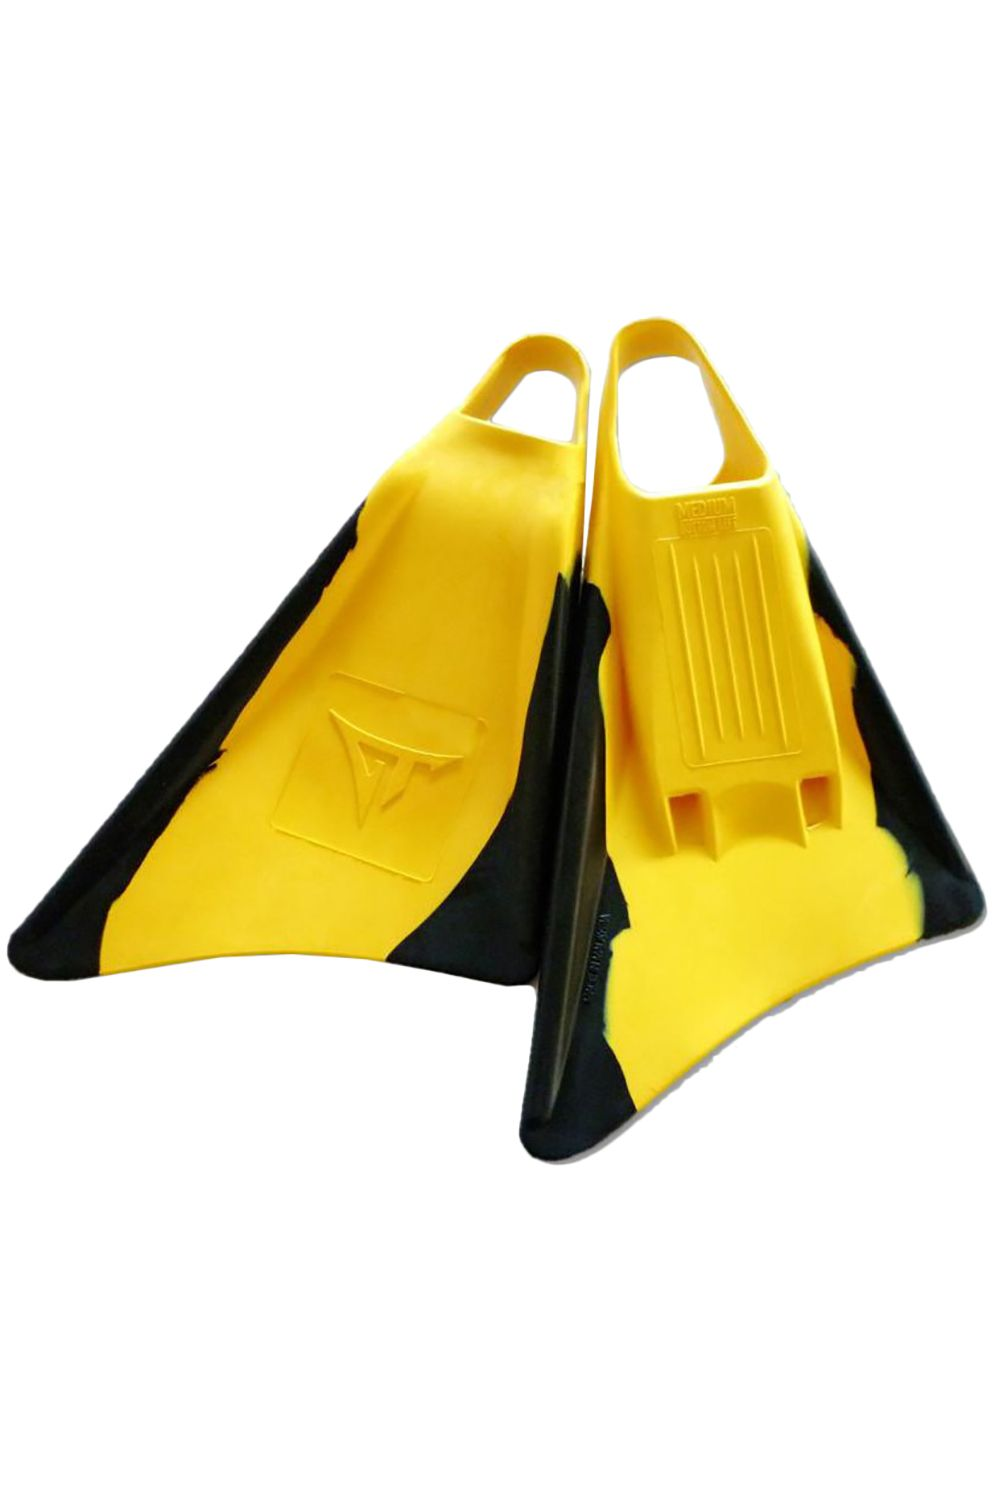 Pés-de-Pato GT Boards GT FINS Z Yellow/Black